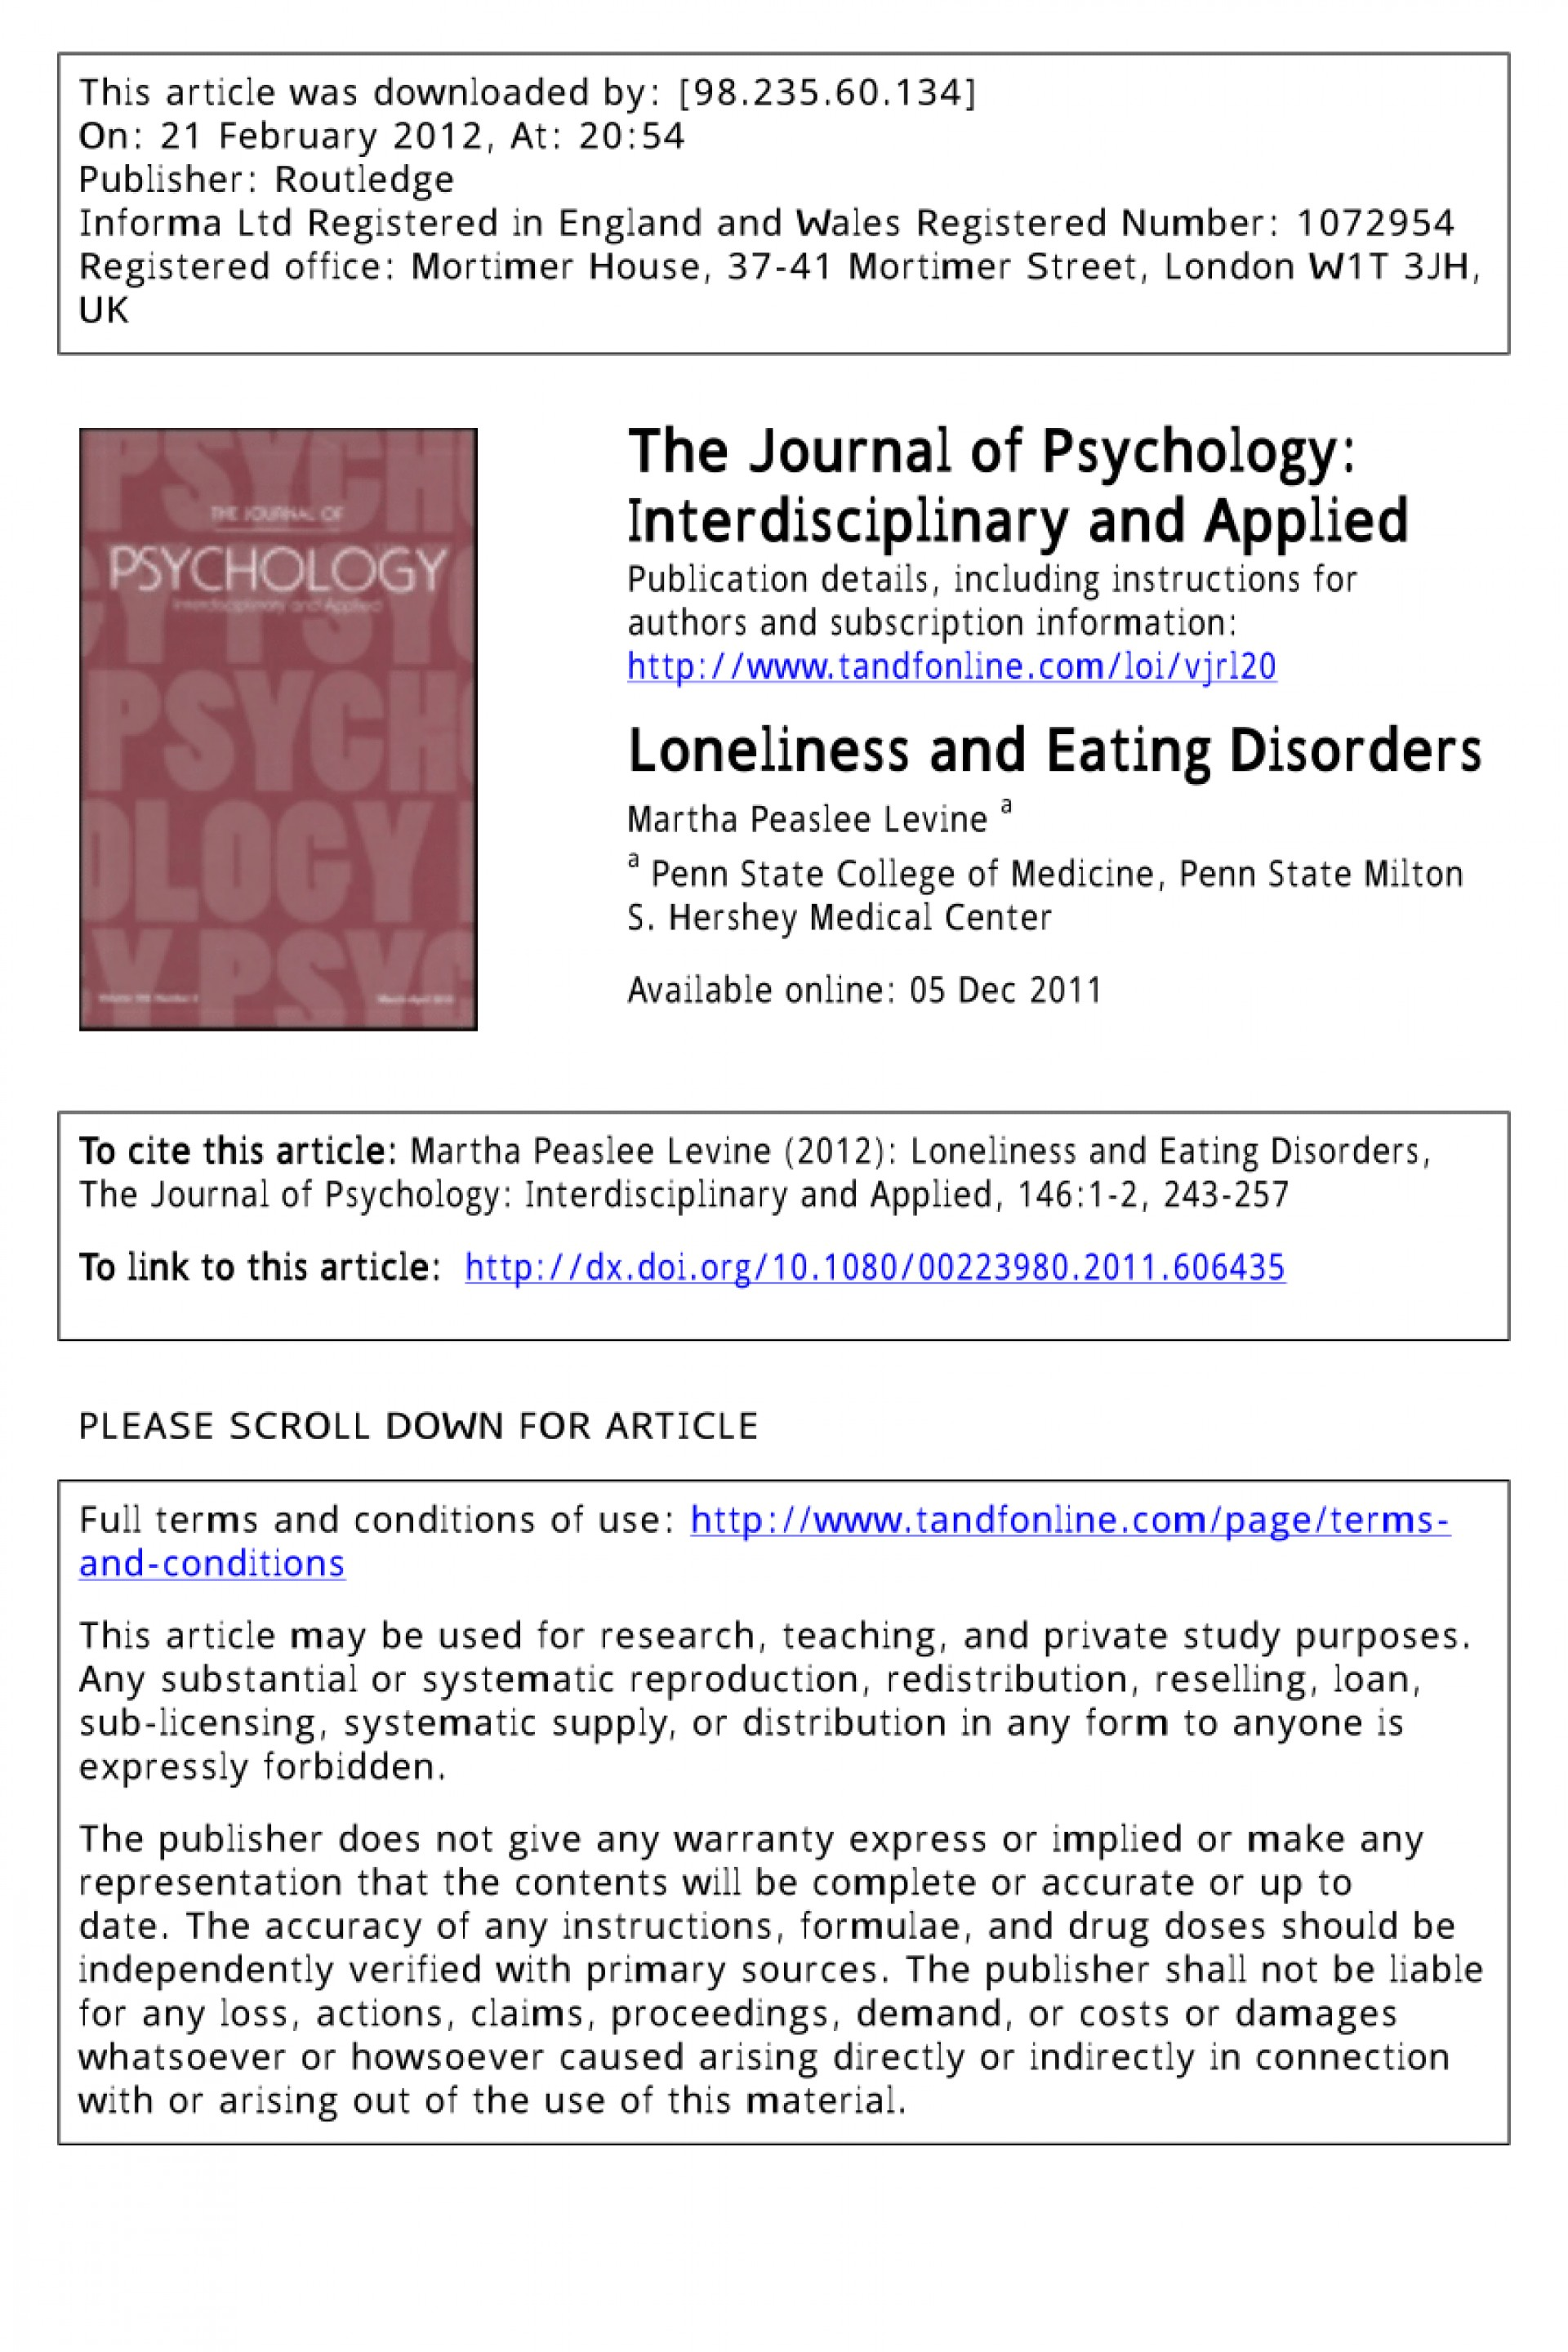 004 Research Paper Largepreview Psychological On Eating Imposing Disorders Psychology Topics 1920